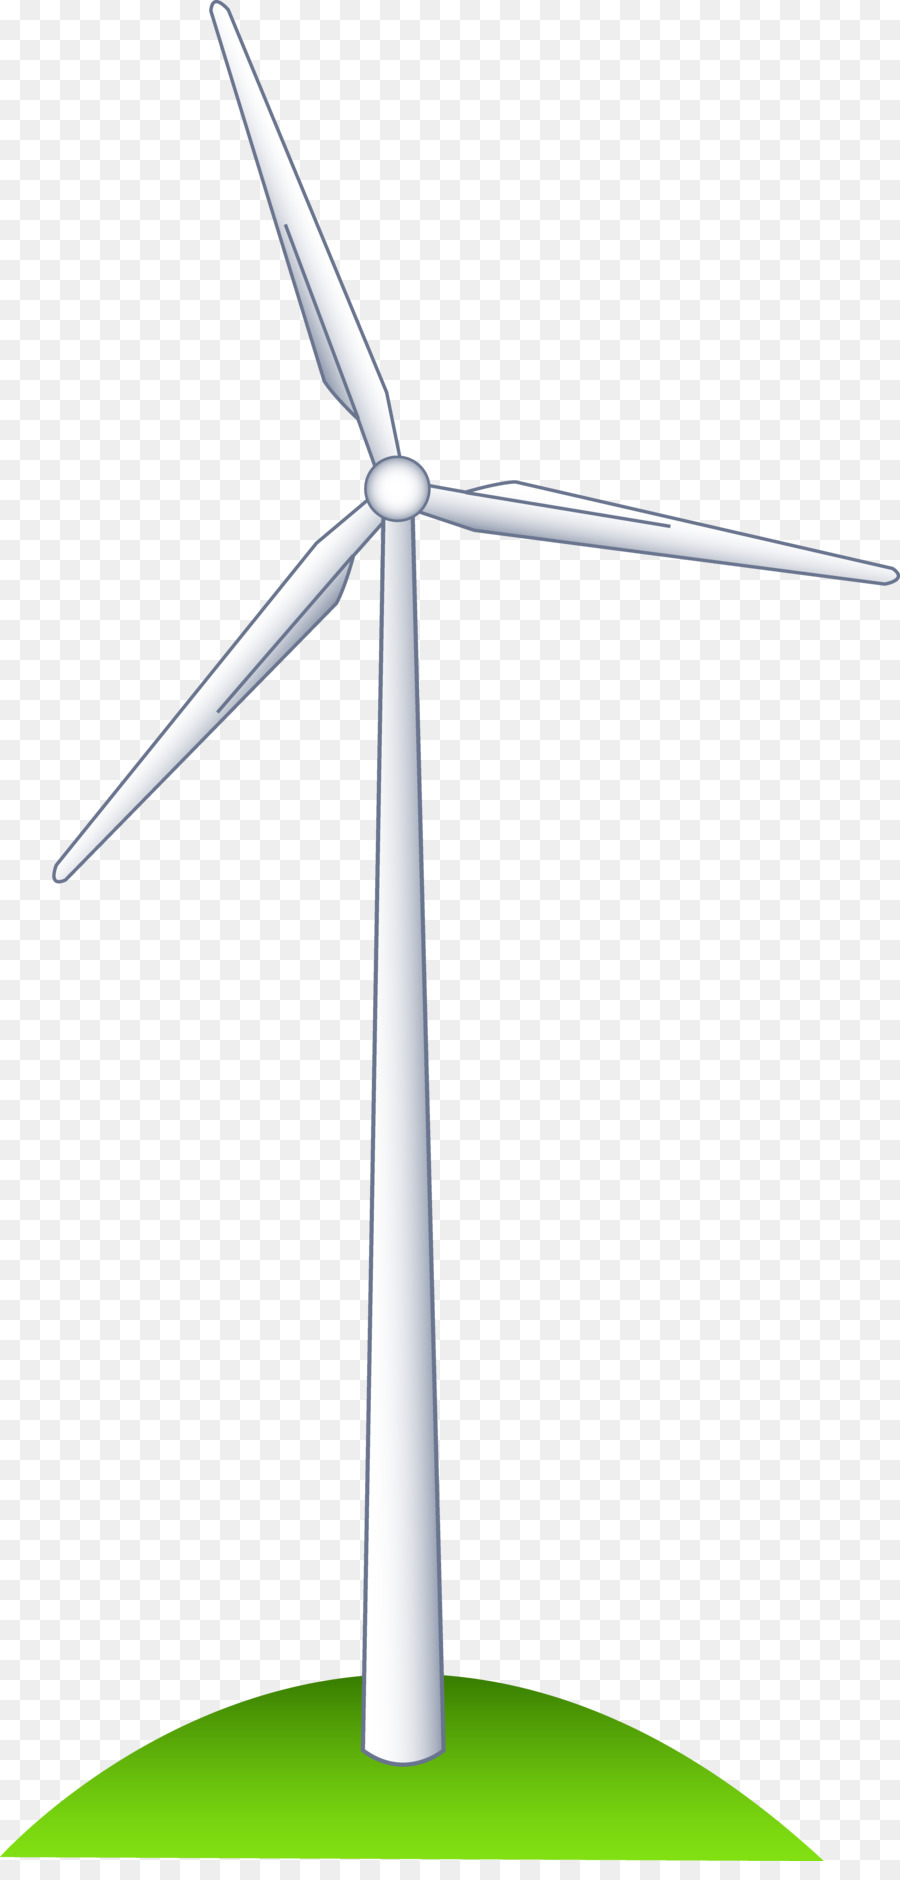 Windmill farn clipart png free library Wind Cartoon png download - 4564*9435 - Free Transparent ... png free library